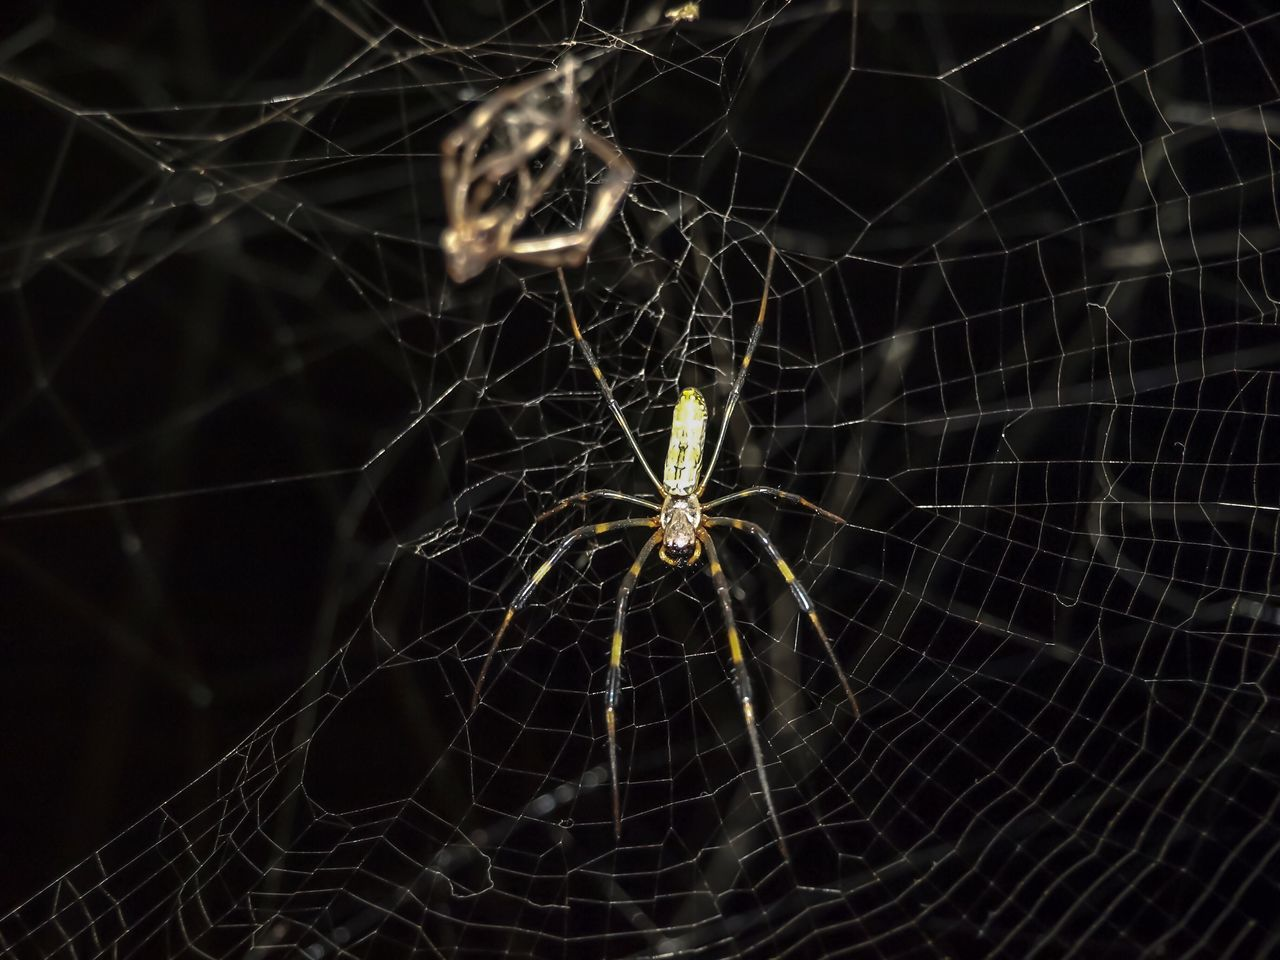 spider web, spider, one animal, animal themes, web, animals in the wild, survival, close-up, animal wildlife, insect, no people, focus on foreground, outdoors, complexity, nature, animal leg, fragility, day, black background